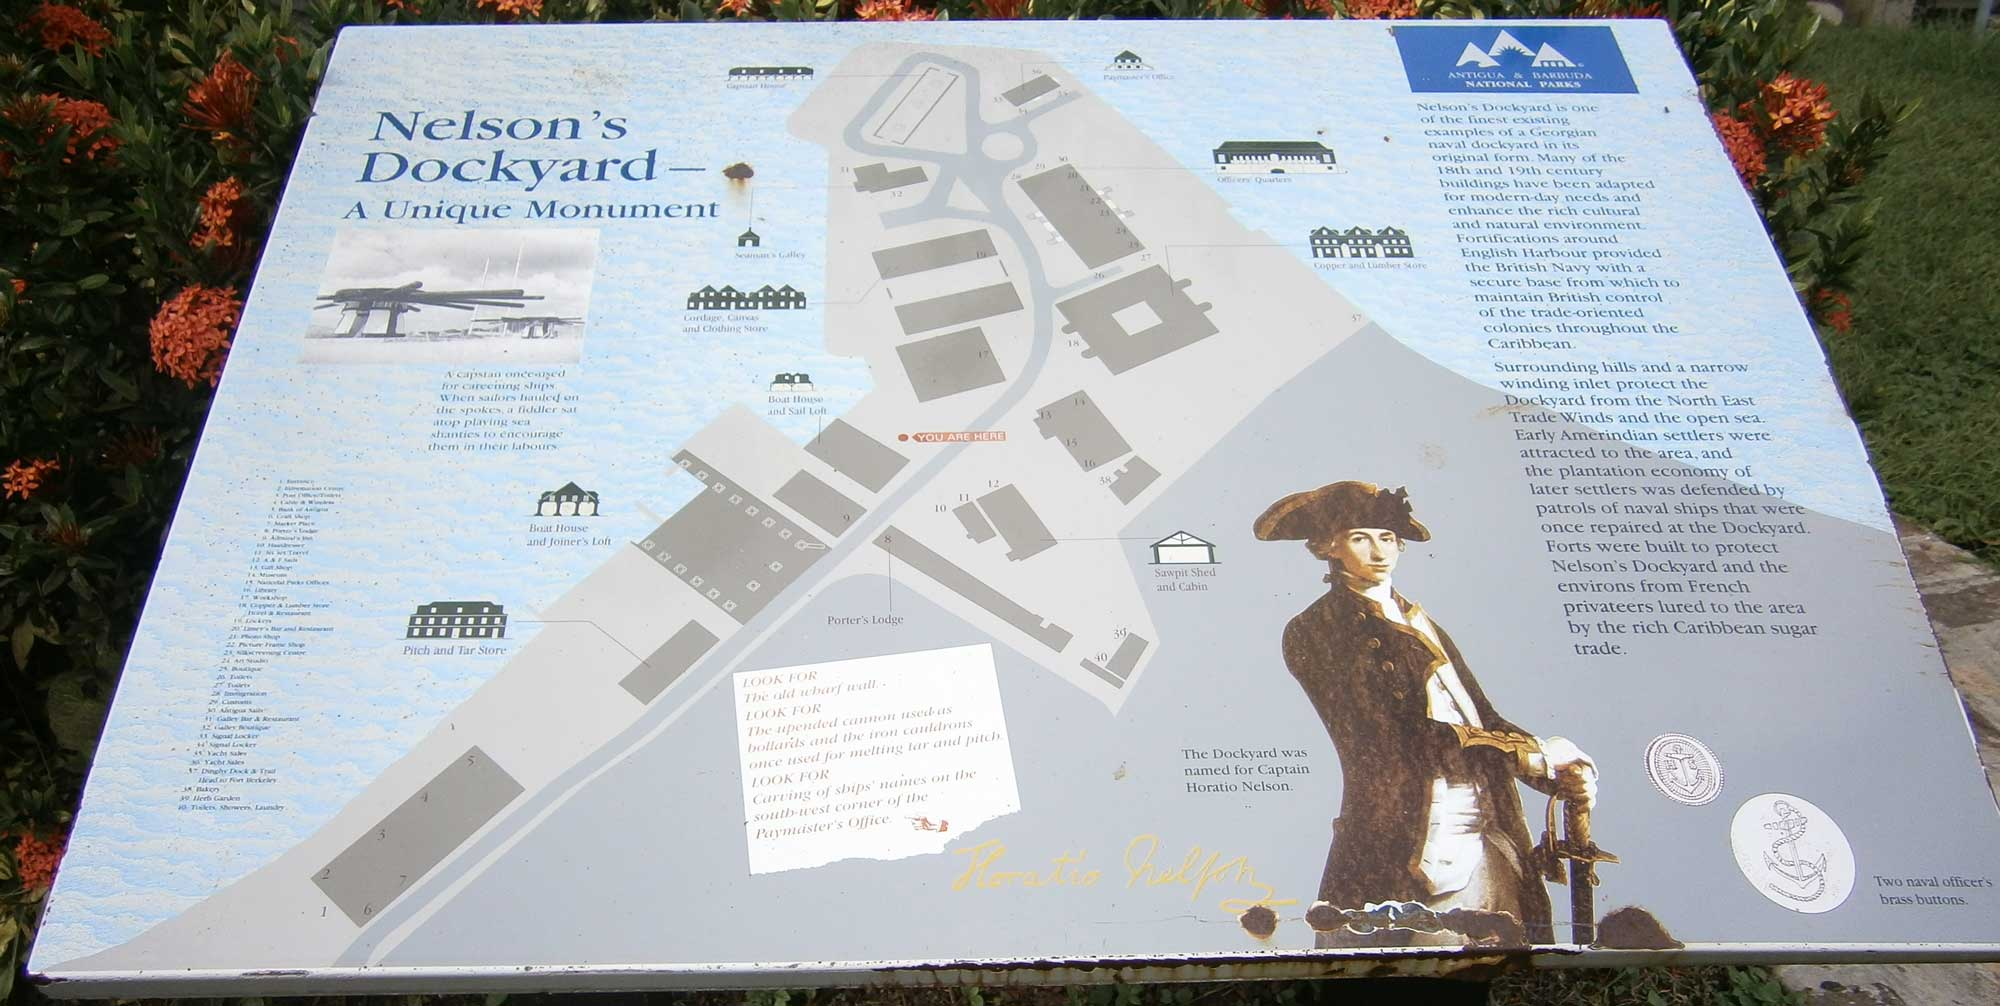 Nelsons Dockyard Map